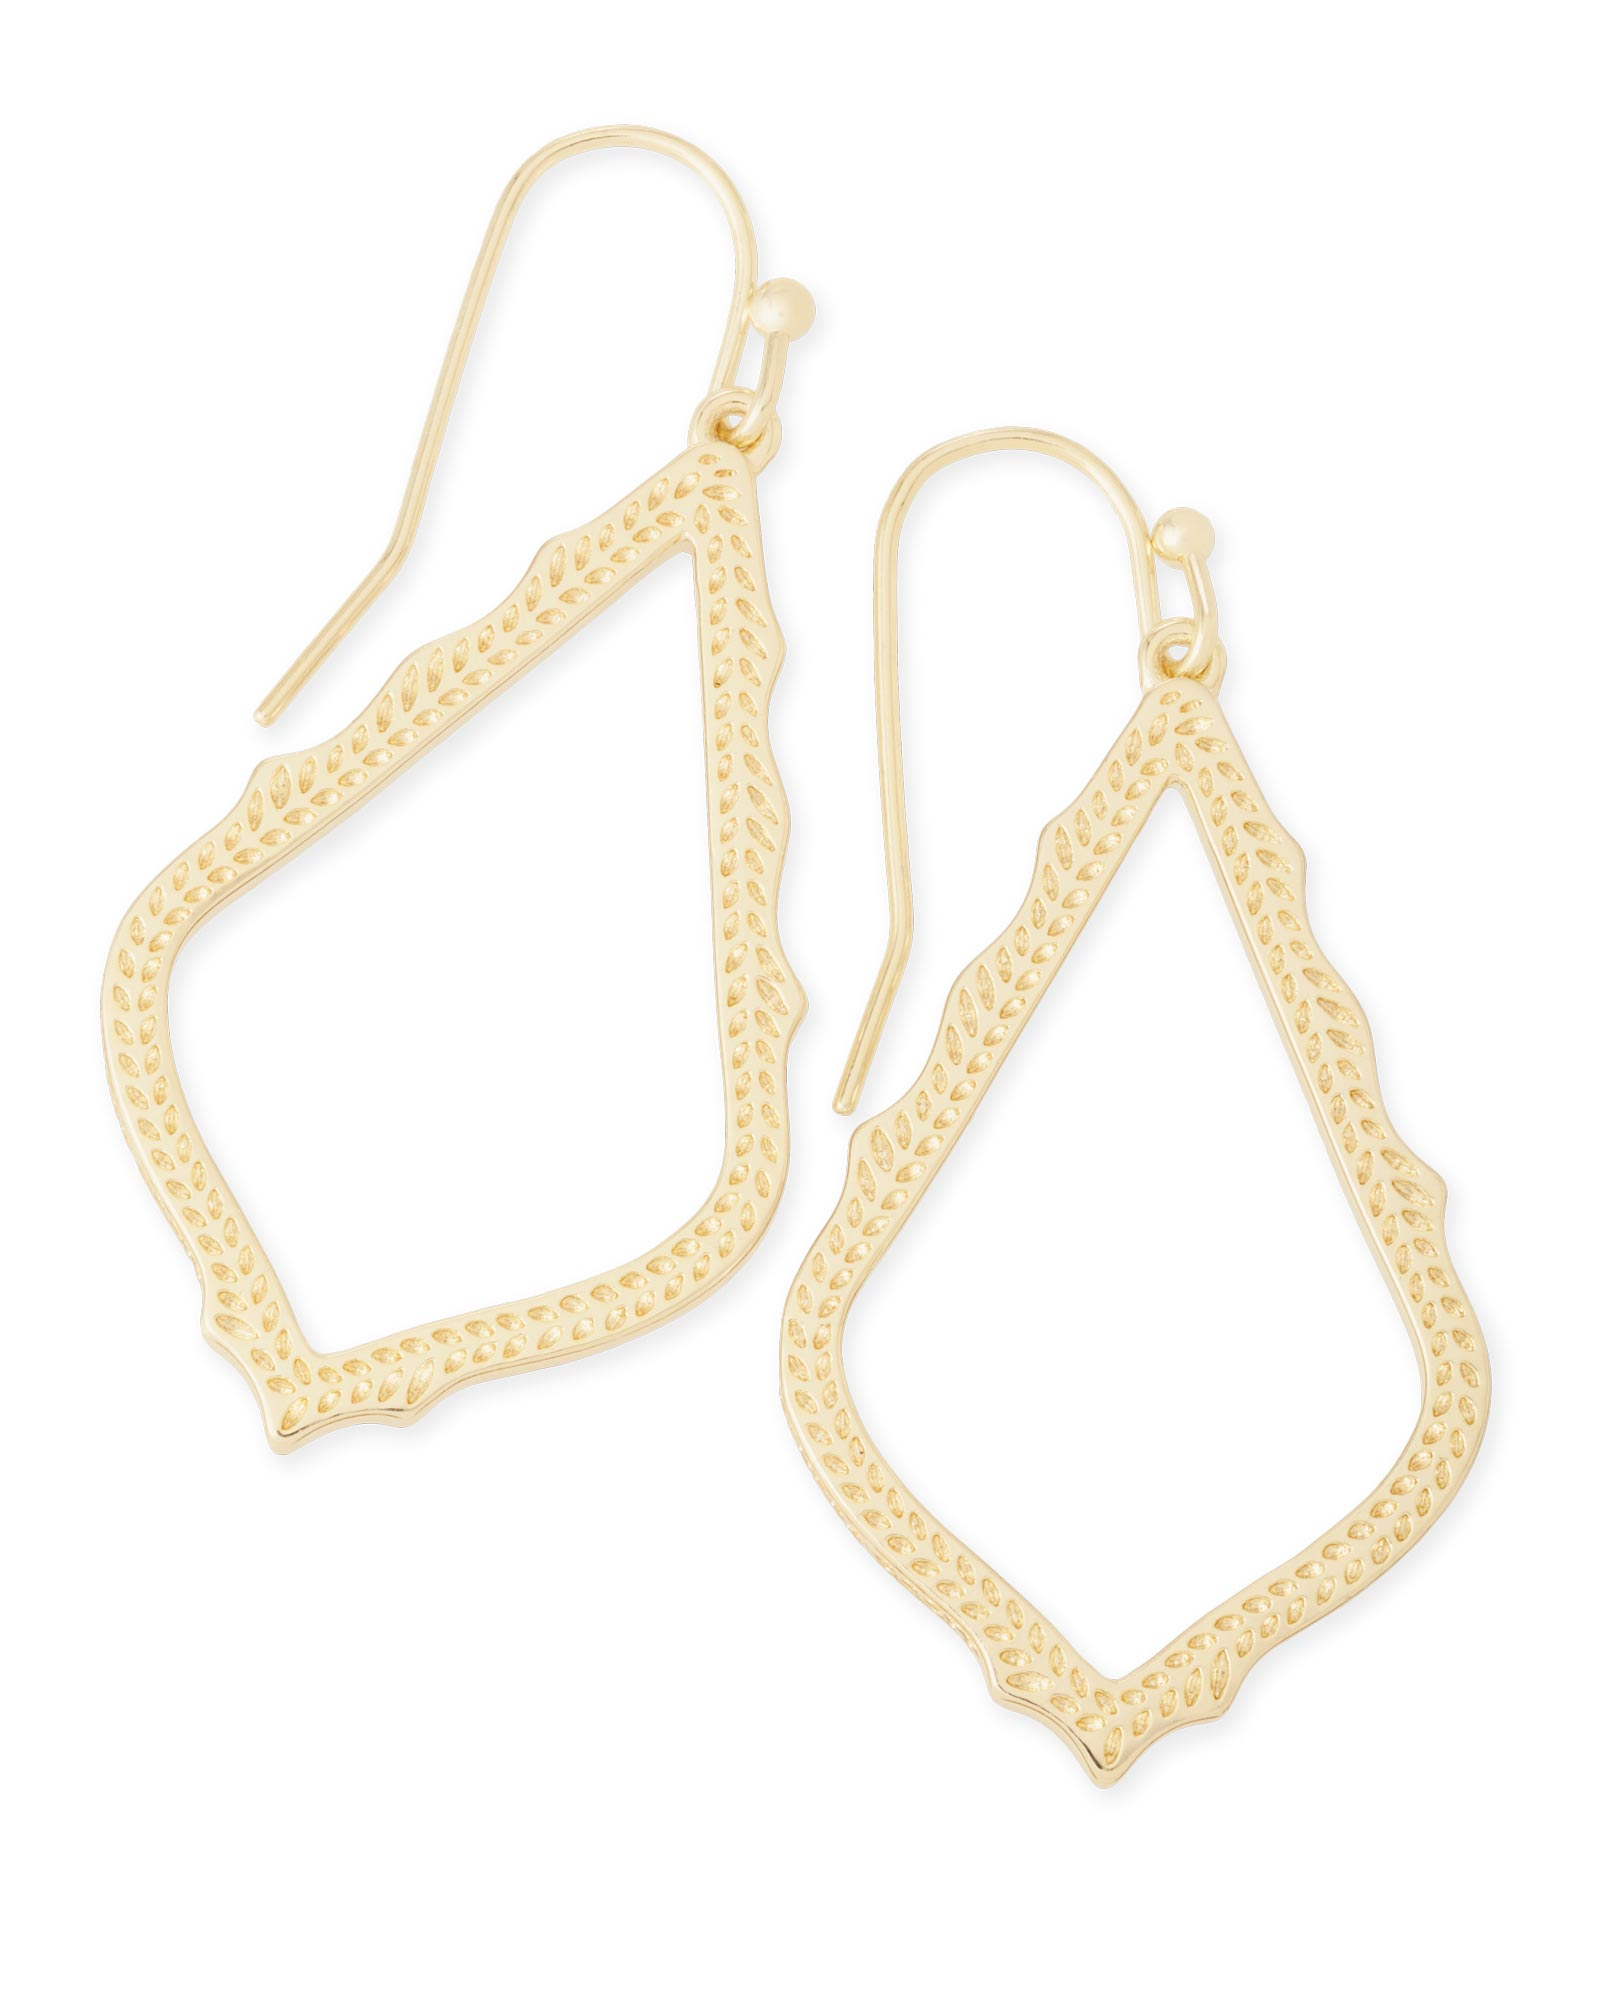 Picture of the product, Kendra Scott Drop Earrings ...